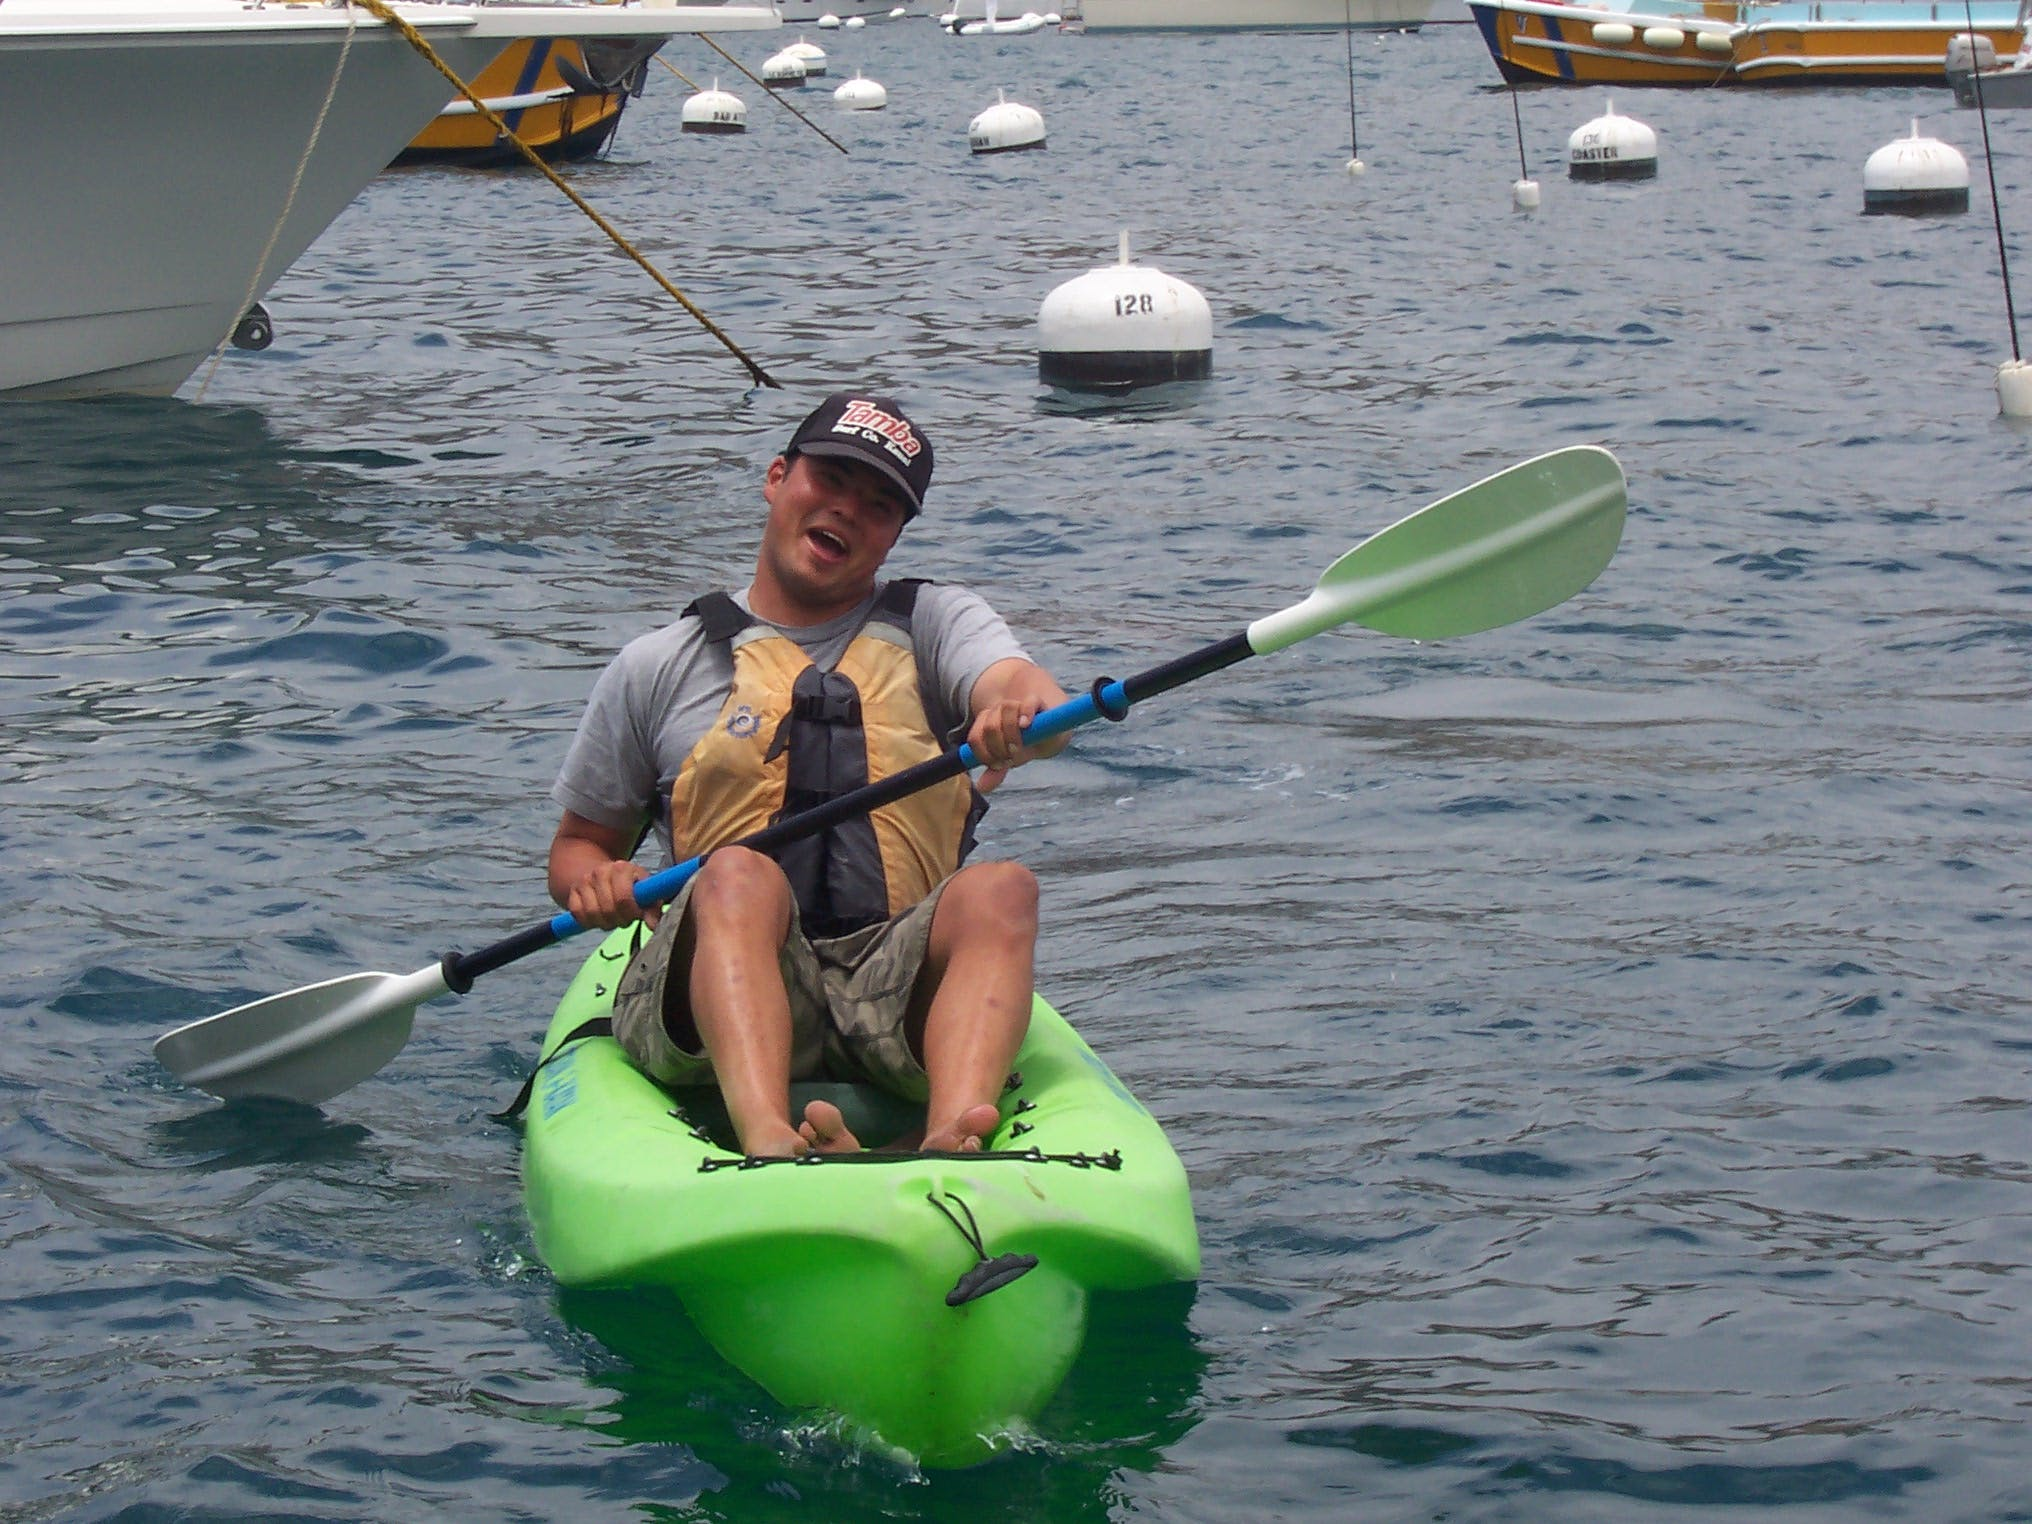 Happy man on a green kayak in the water